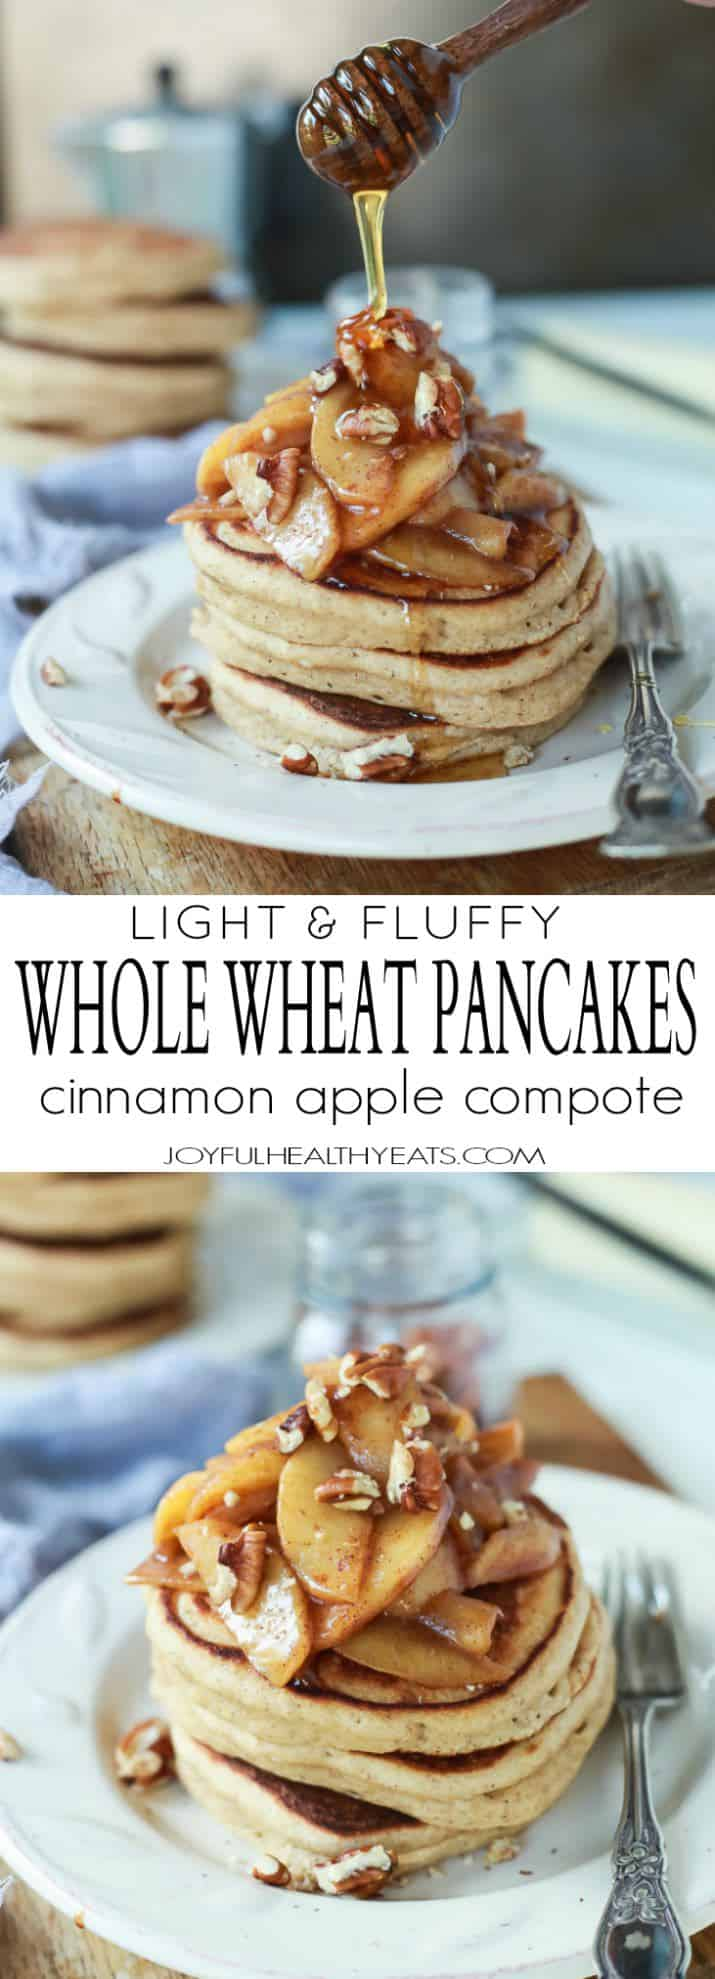 Fluffy Whole Wheat Pancakes With Cinnamon Apple Compote